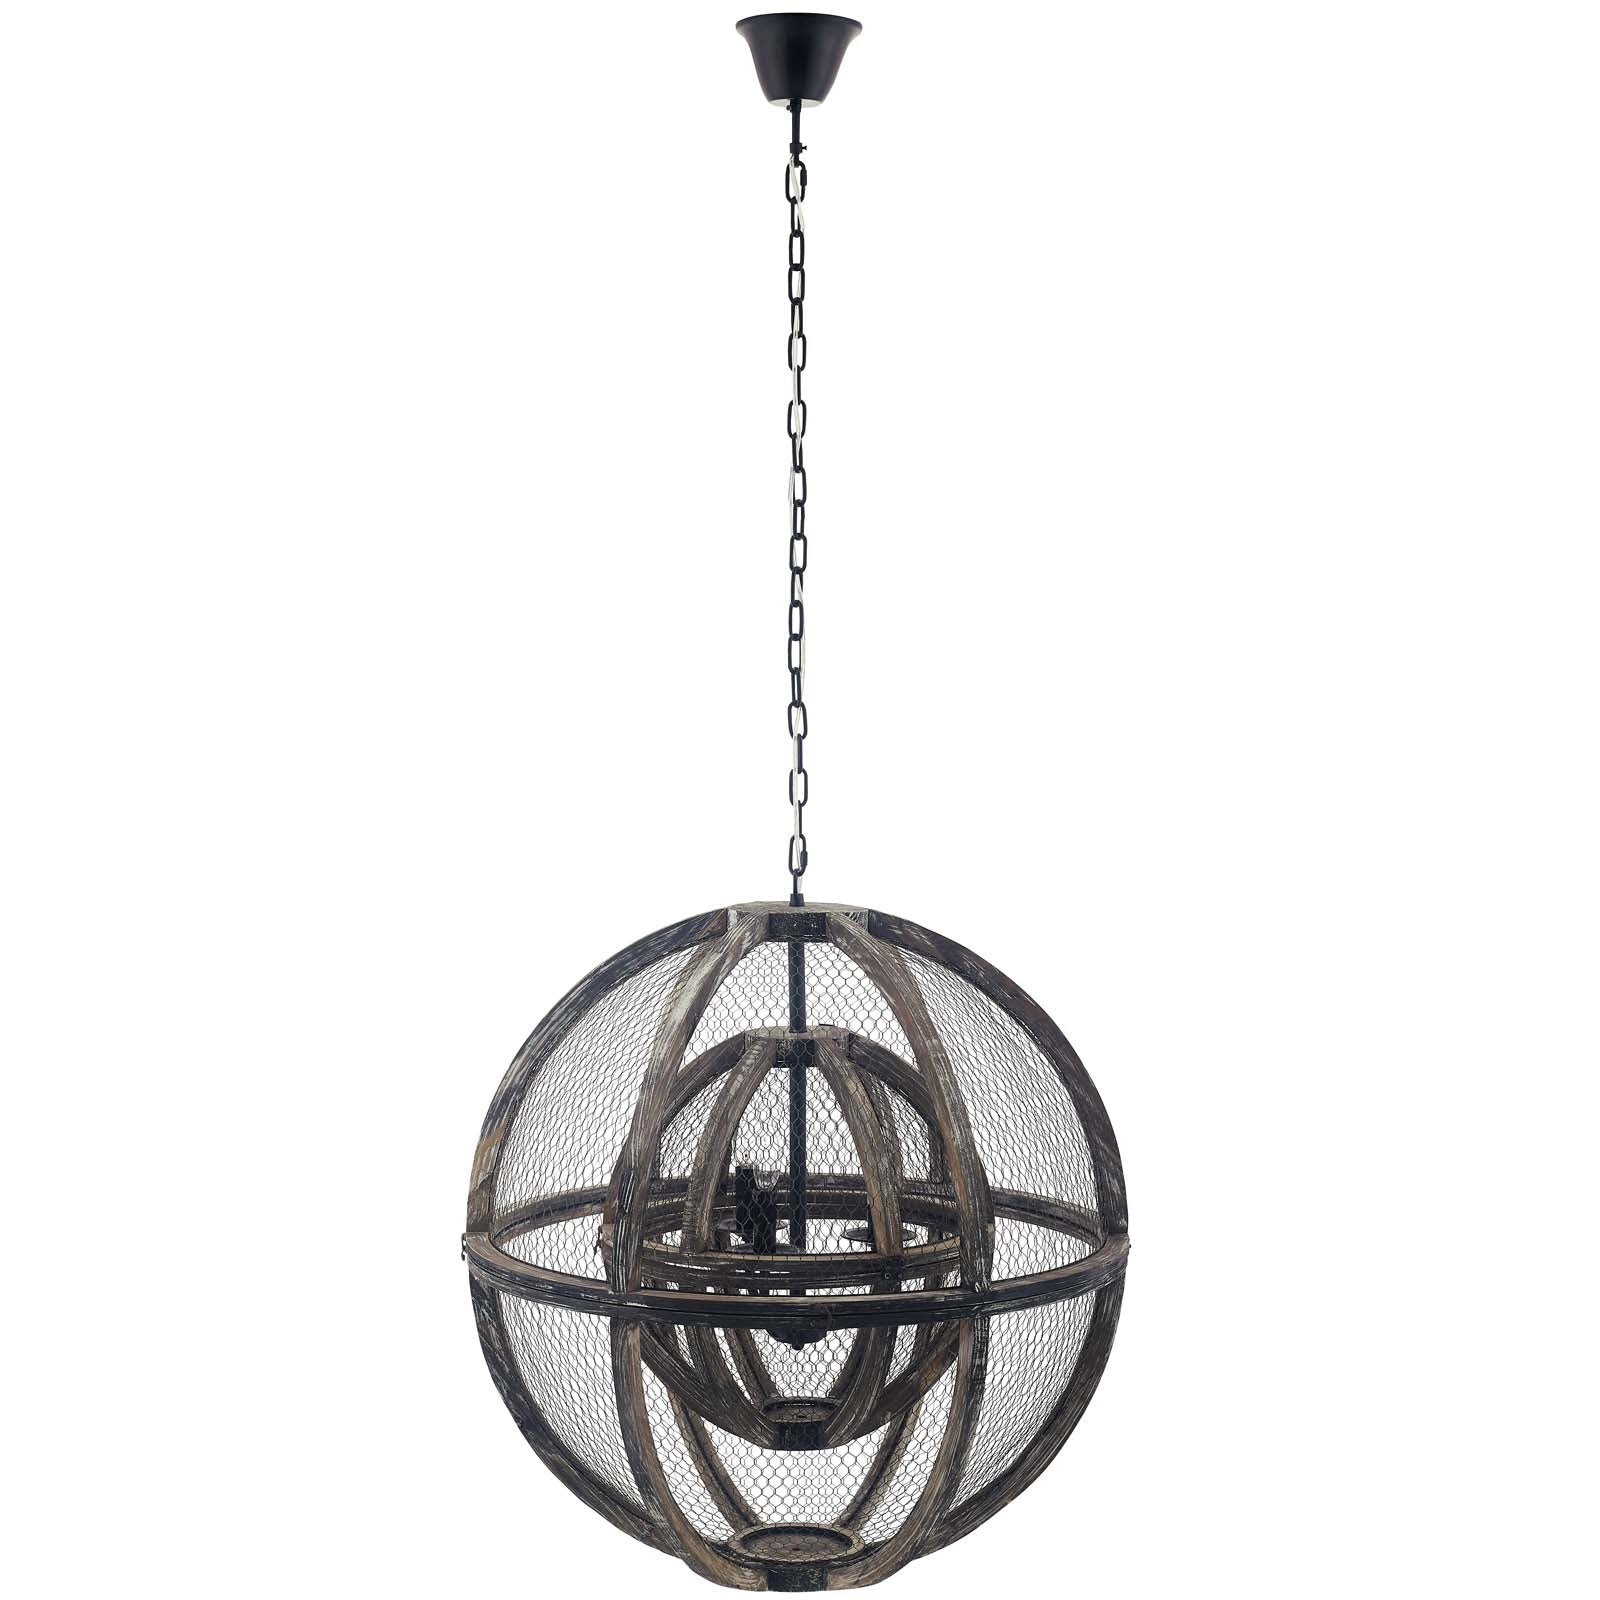 Gravitate Globe Rustic Oak Wood Pendant Light Chandelier